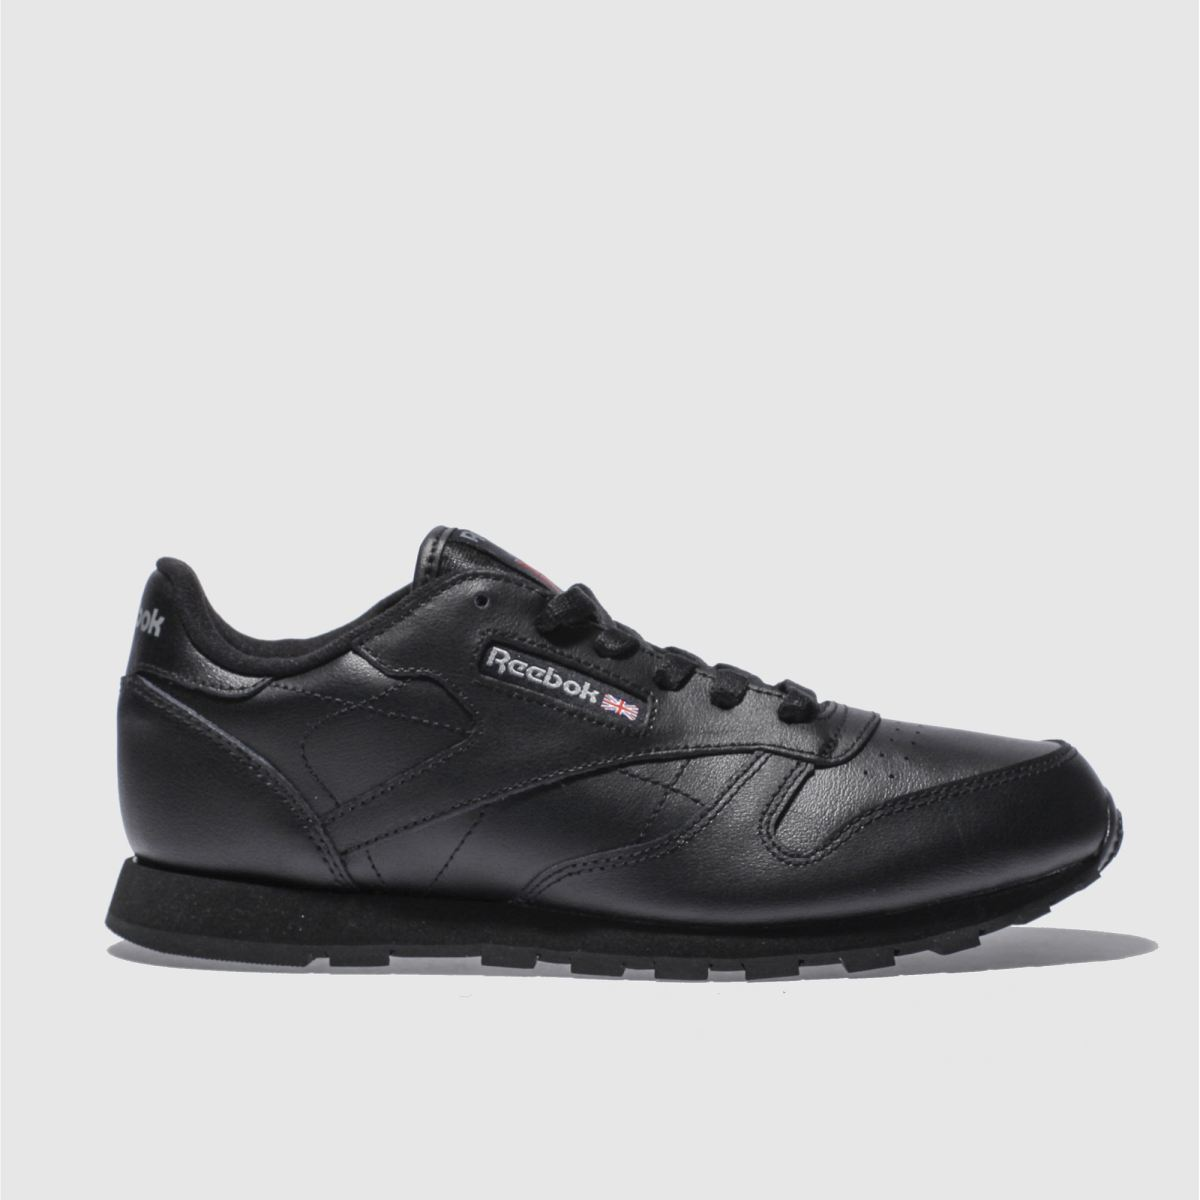 2ba863f9afca7 Reebok Black Classic Leather Trainers Youth - Schuh at Westquay - Shop  Online